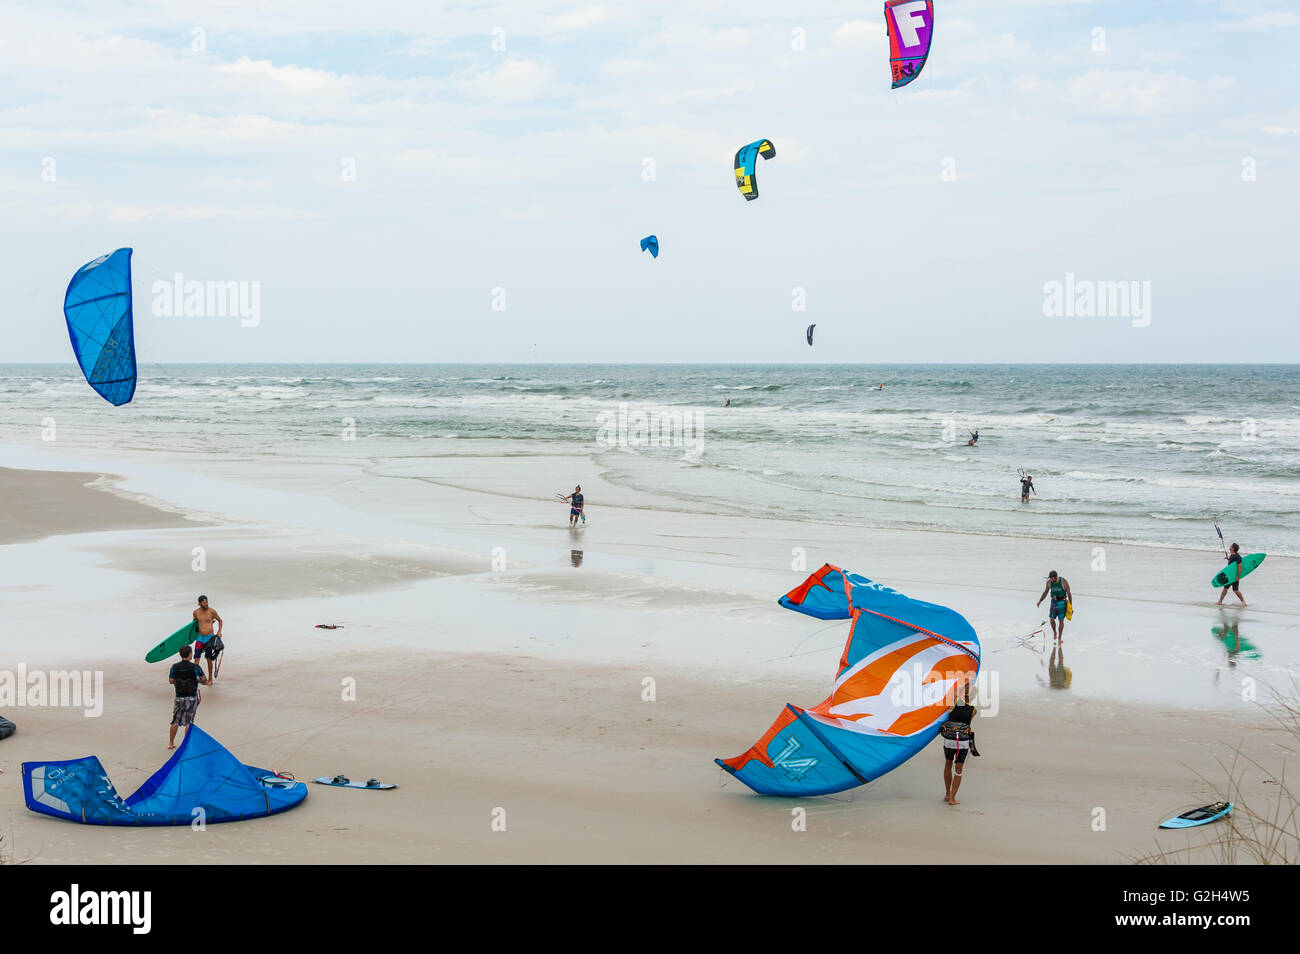 Kitesurfers enjoying an open stretch of beach on a windy day in St. Augustine, Florida. (USA) - Stock Image